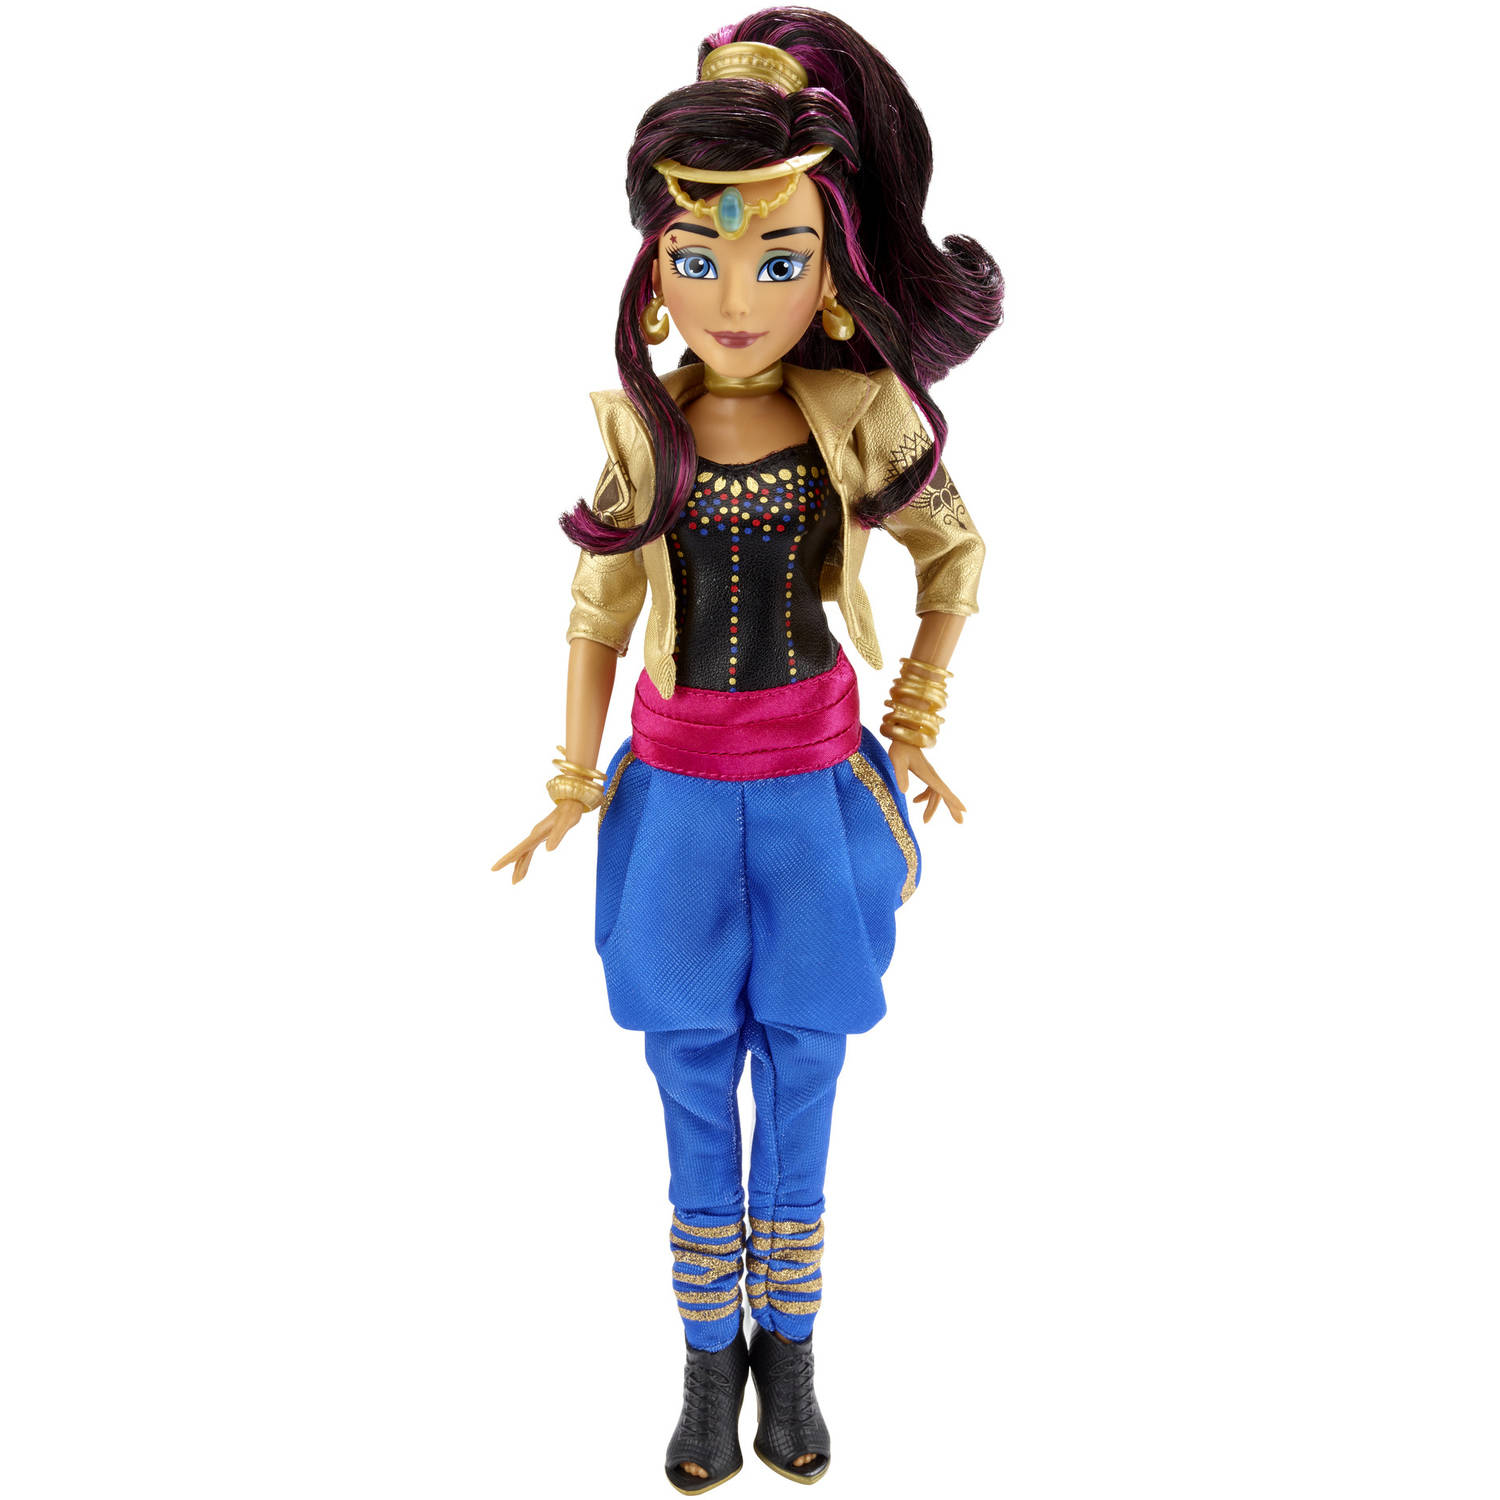 Disney Descendants Genie Chic Jordan of Auradon Prep by Hasbro